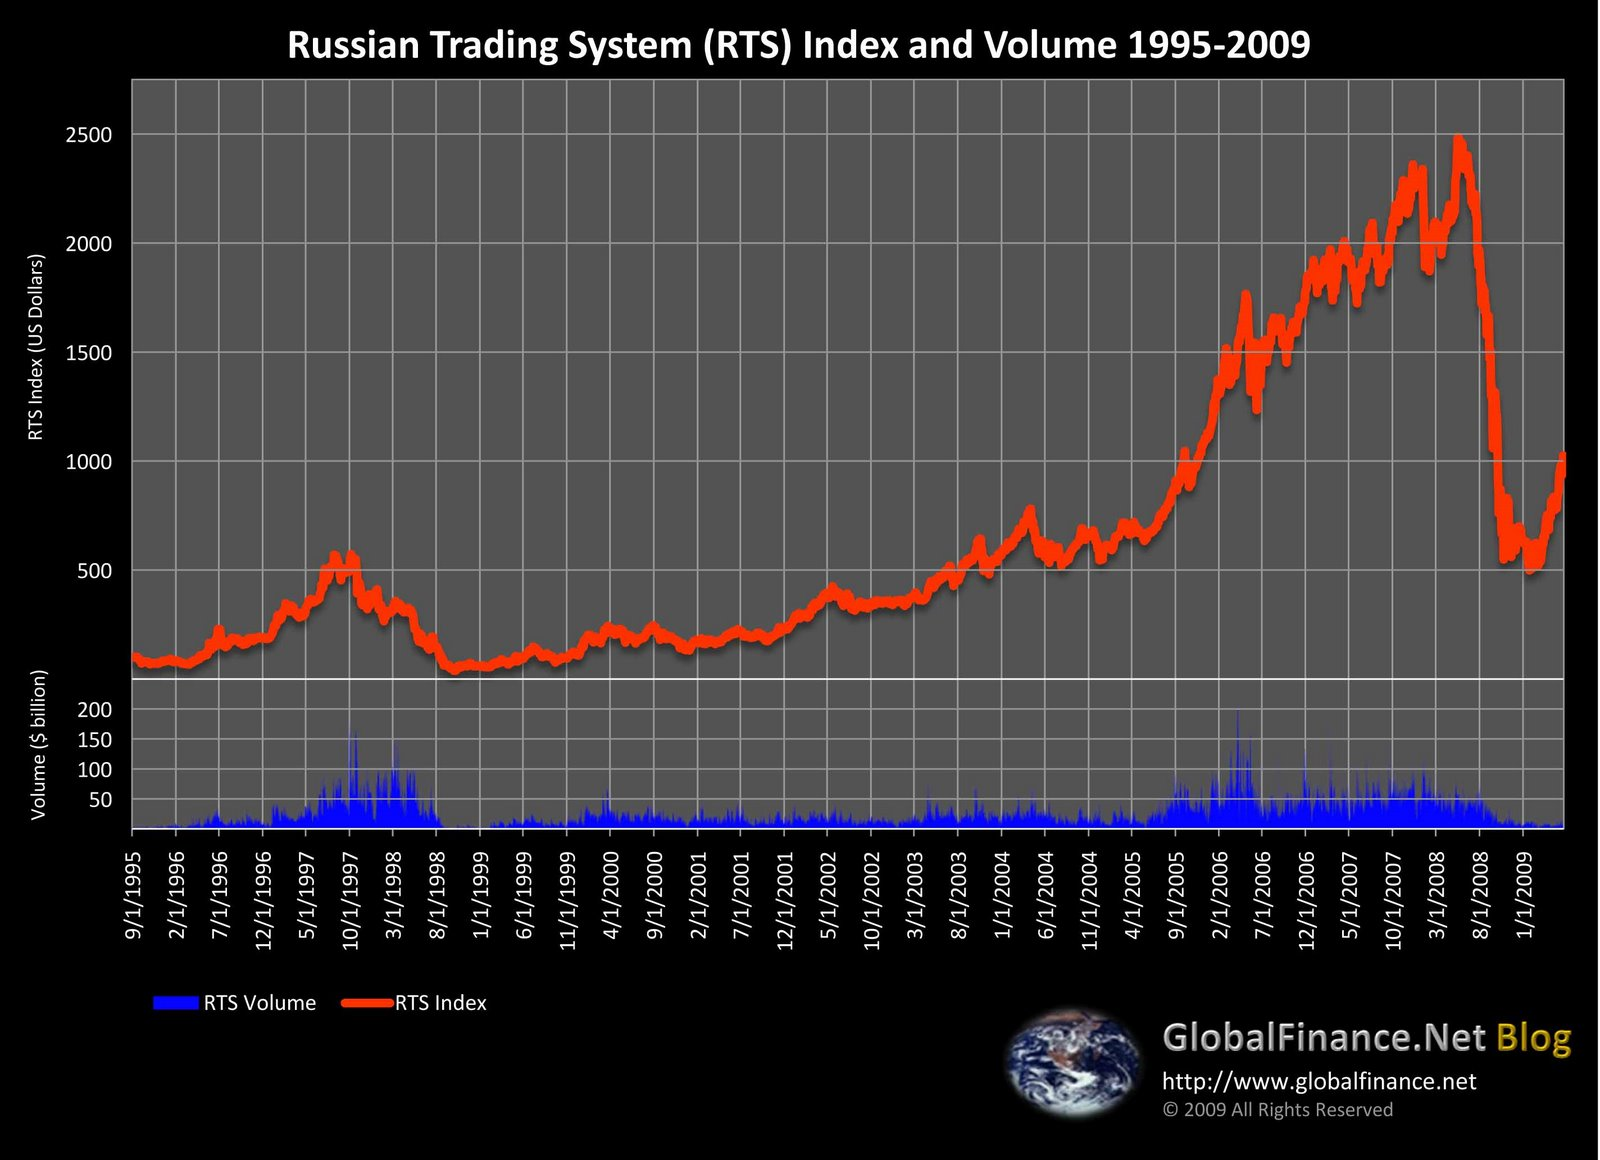 Russian Trading System Index 1995-2009